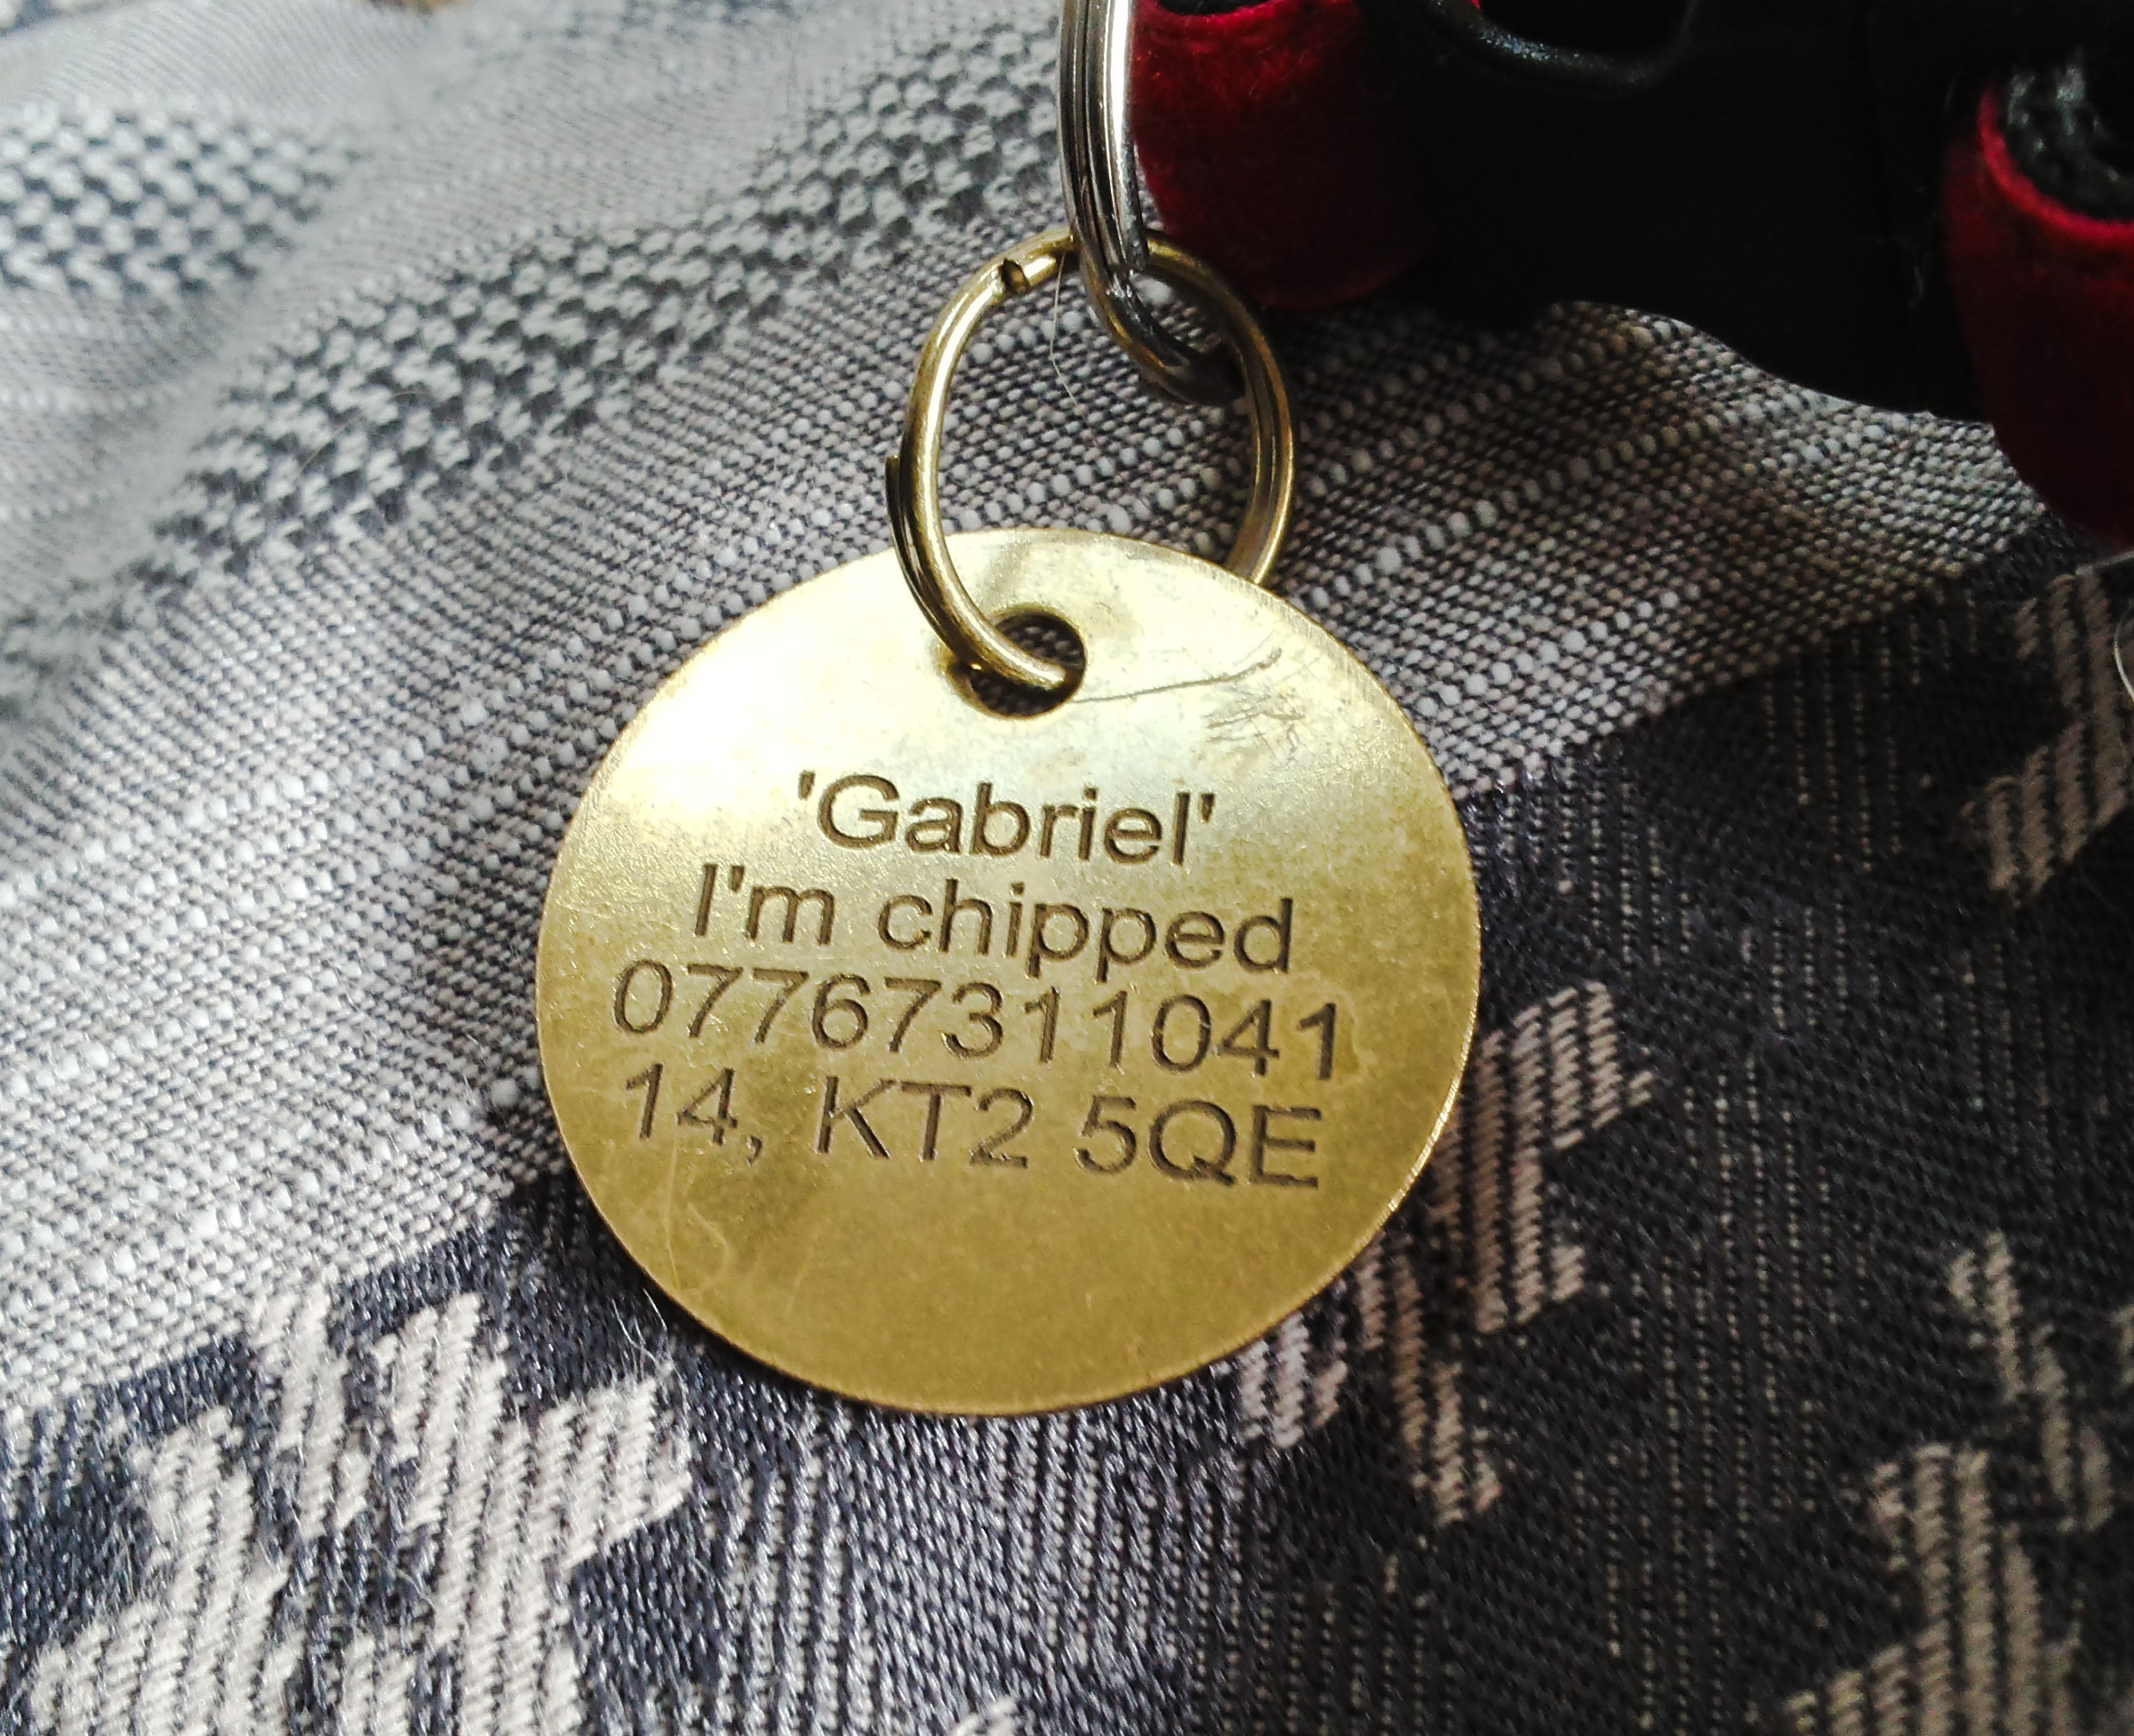 Cat's ID tag showing the layout of the information